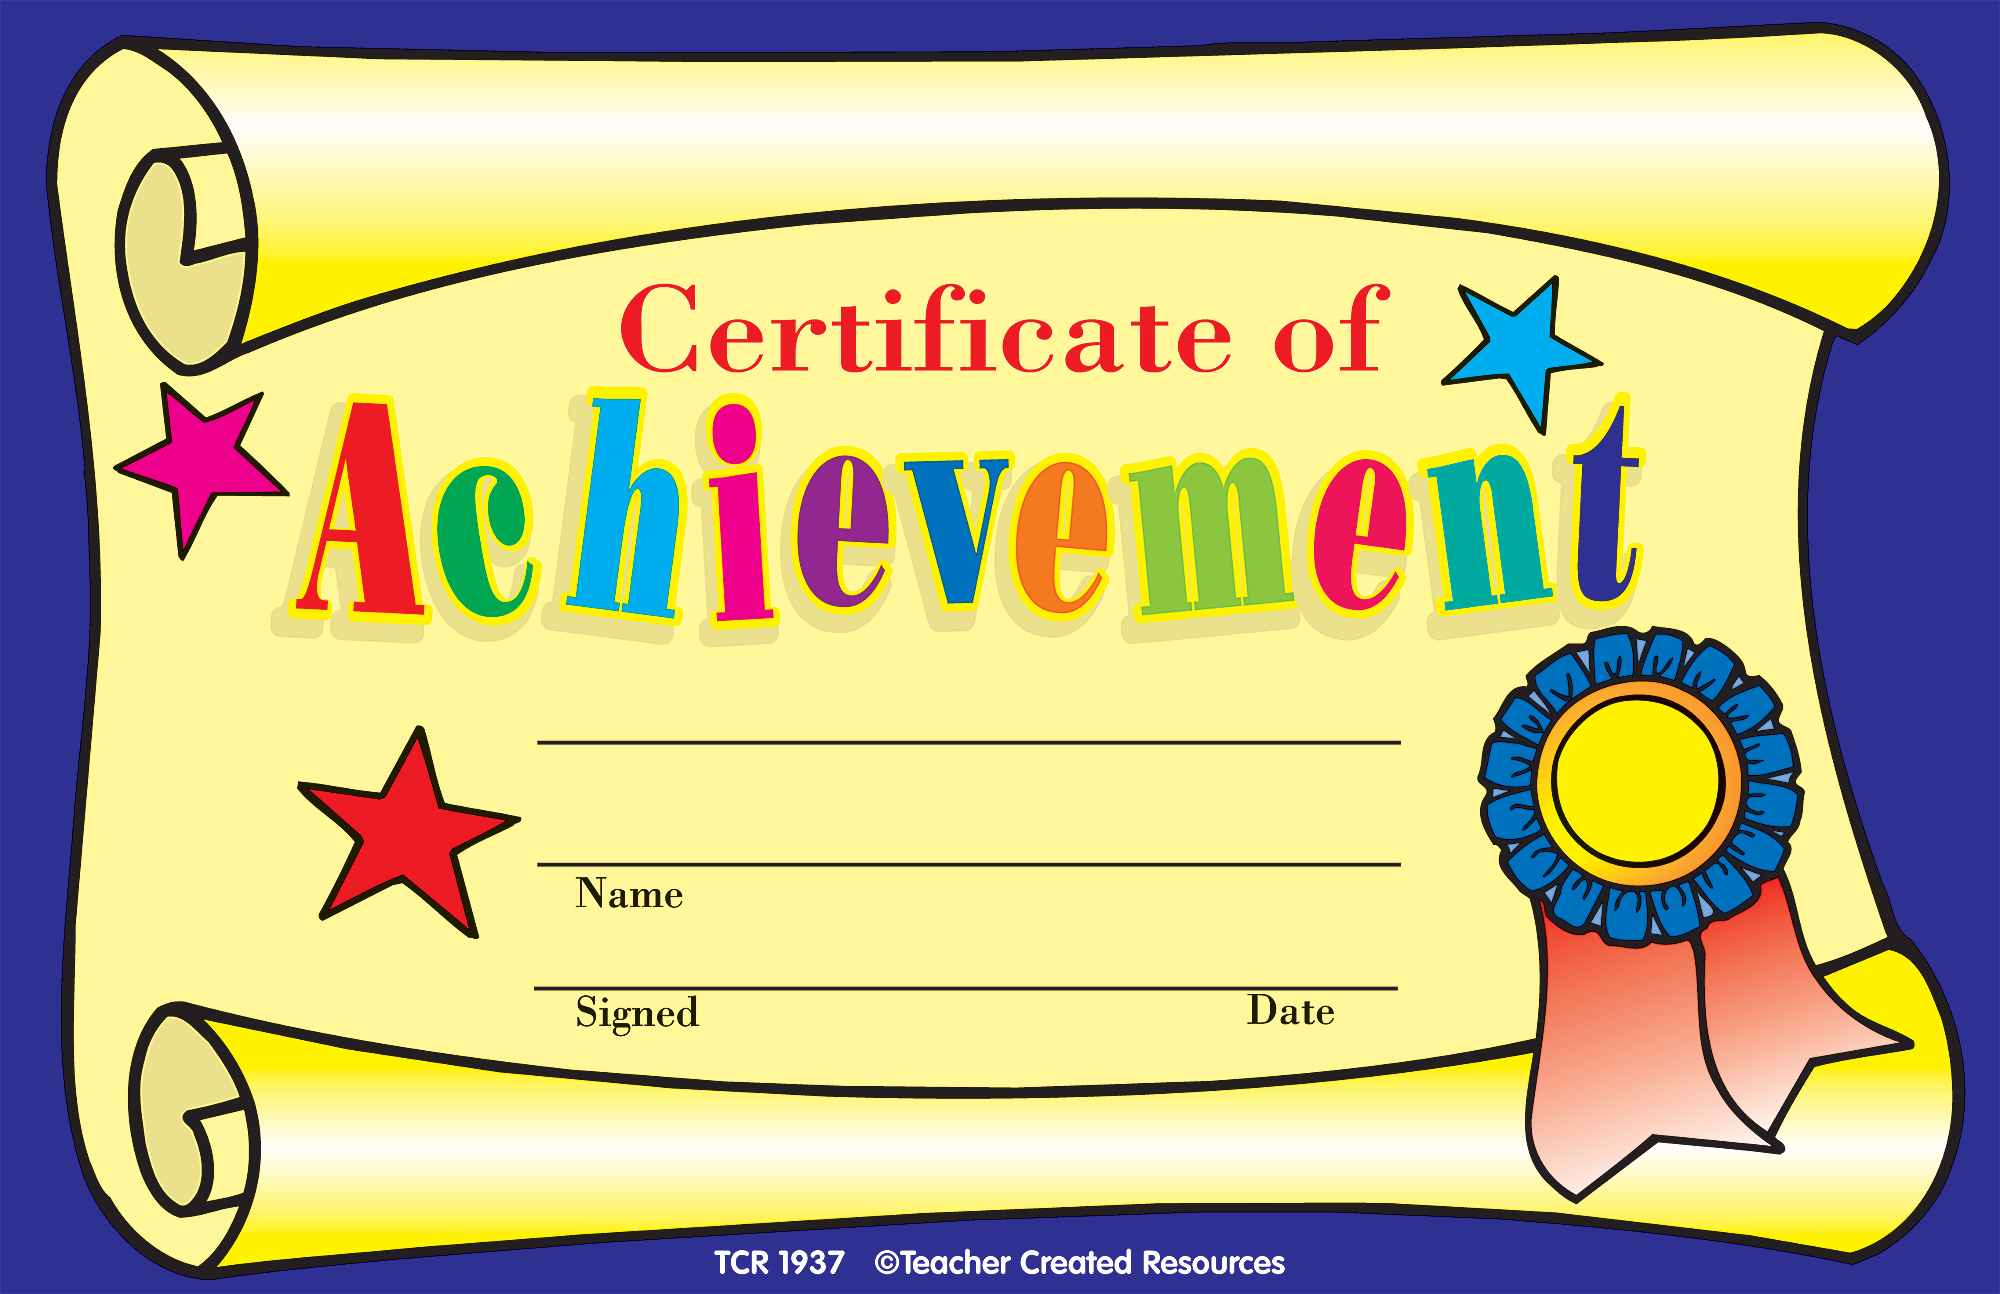 Certificate of Achievement Awards - TCR1937 | Teacher Created Resources